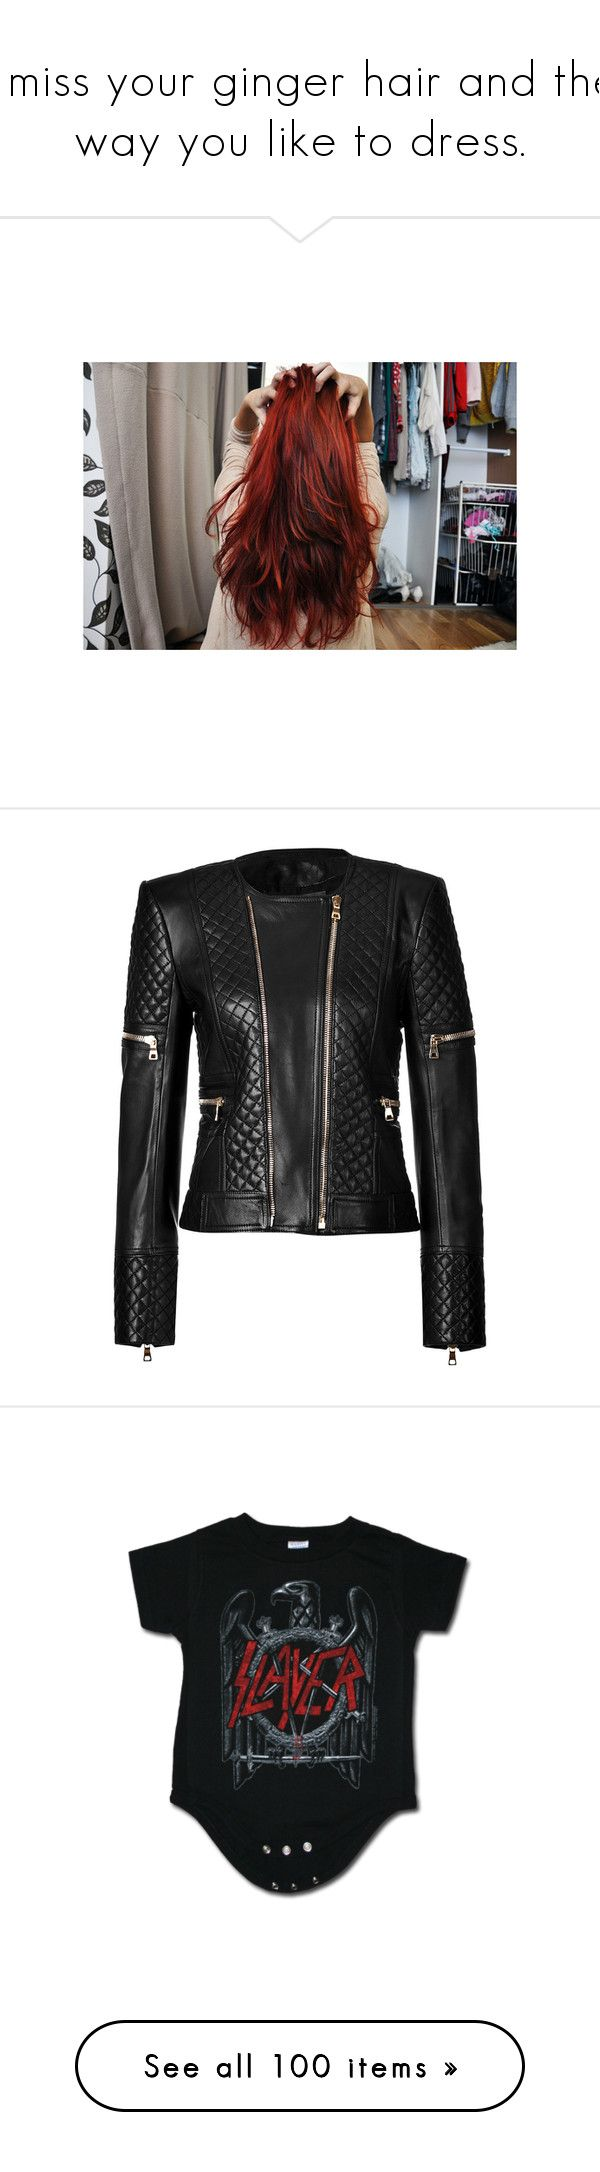 """""""I miss your ginger hair and the way you like to dress."""" by vicky-carter ❤ liked on Polyvore featuring hair, outerwear, jackets, balmain, leather jacket, zip front jacket, balmain jacket, 80s leather jacket, quilted jackets and 80s jackets"""